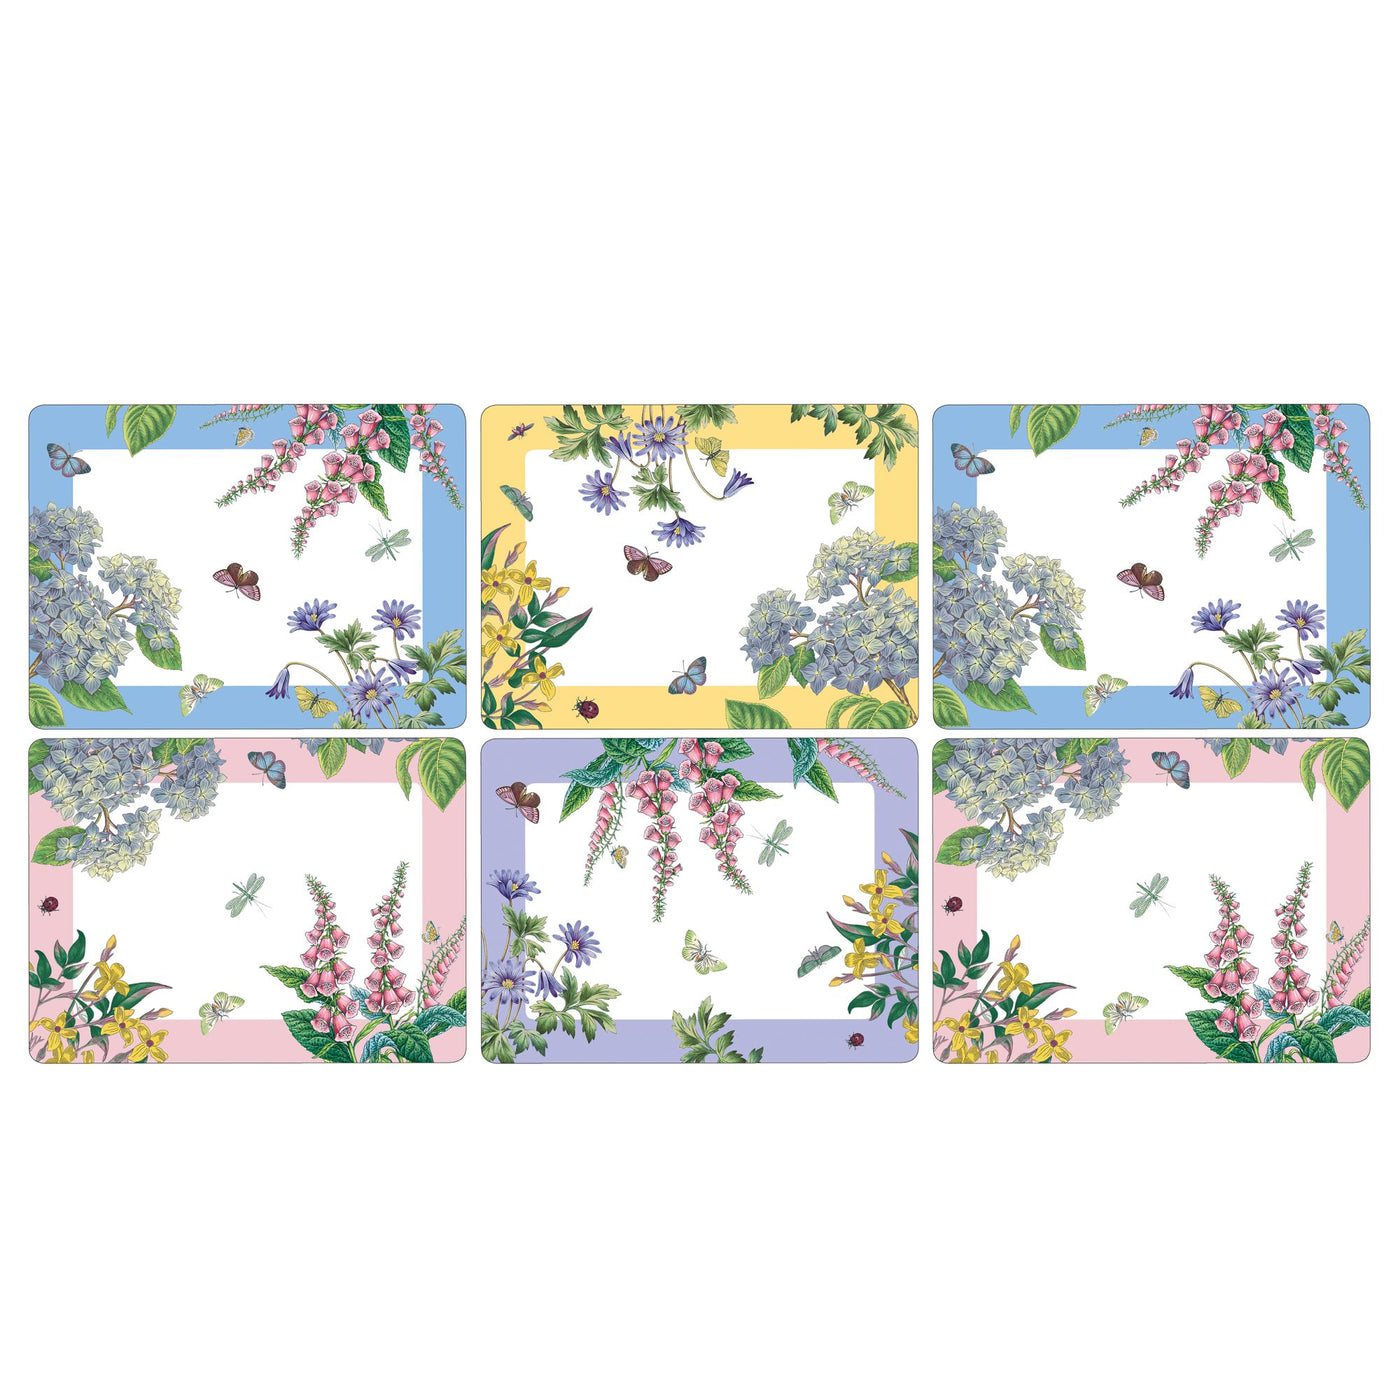 Botanic Garden Terrace Luncheon Mats, Set of 6